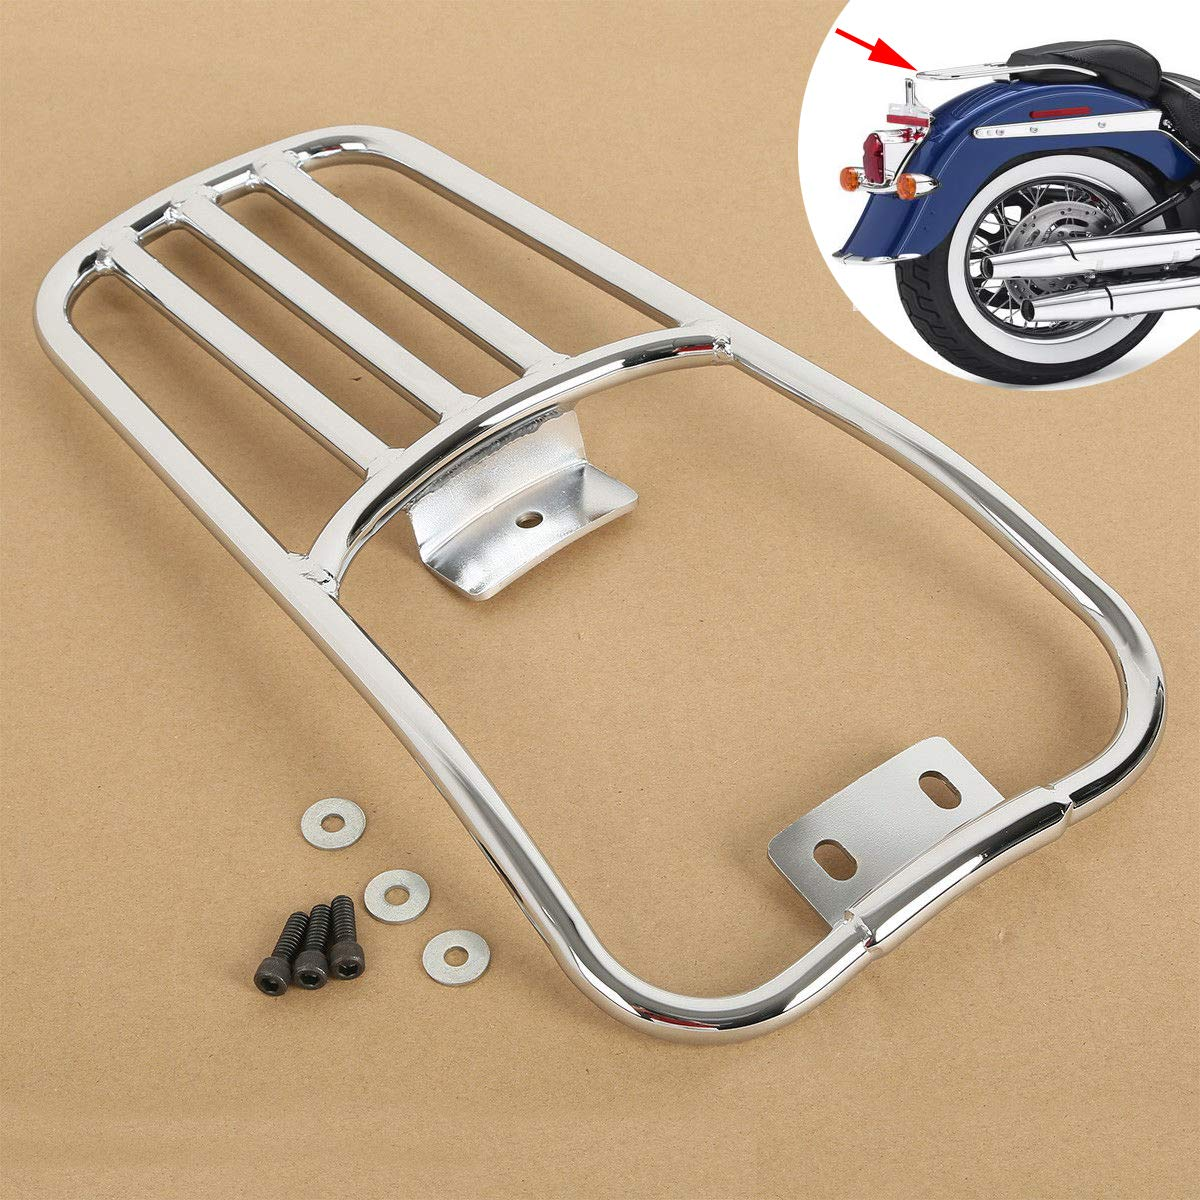 XFMT Detachable Passenger Sissy Bar Backrest Upright For Harley Softail Deluxe FLSTN